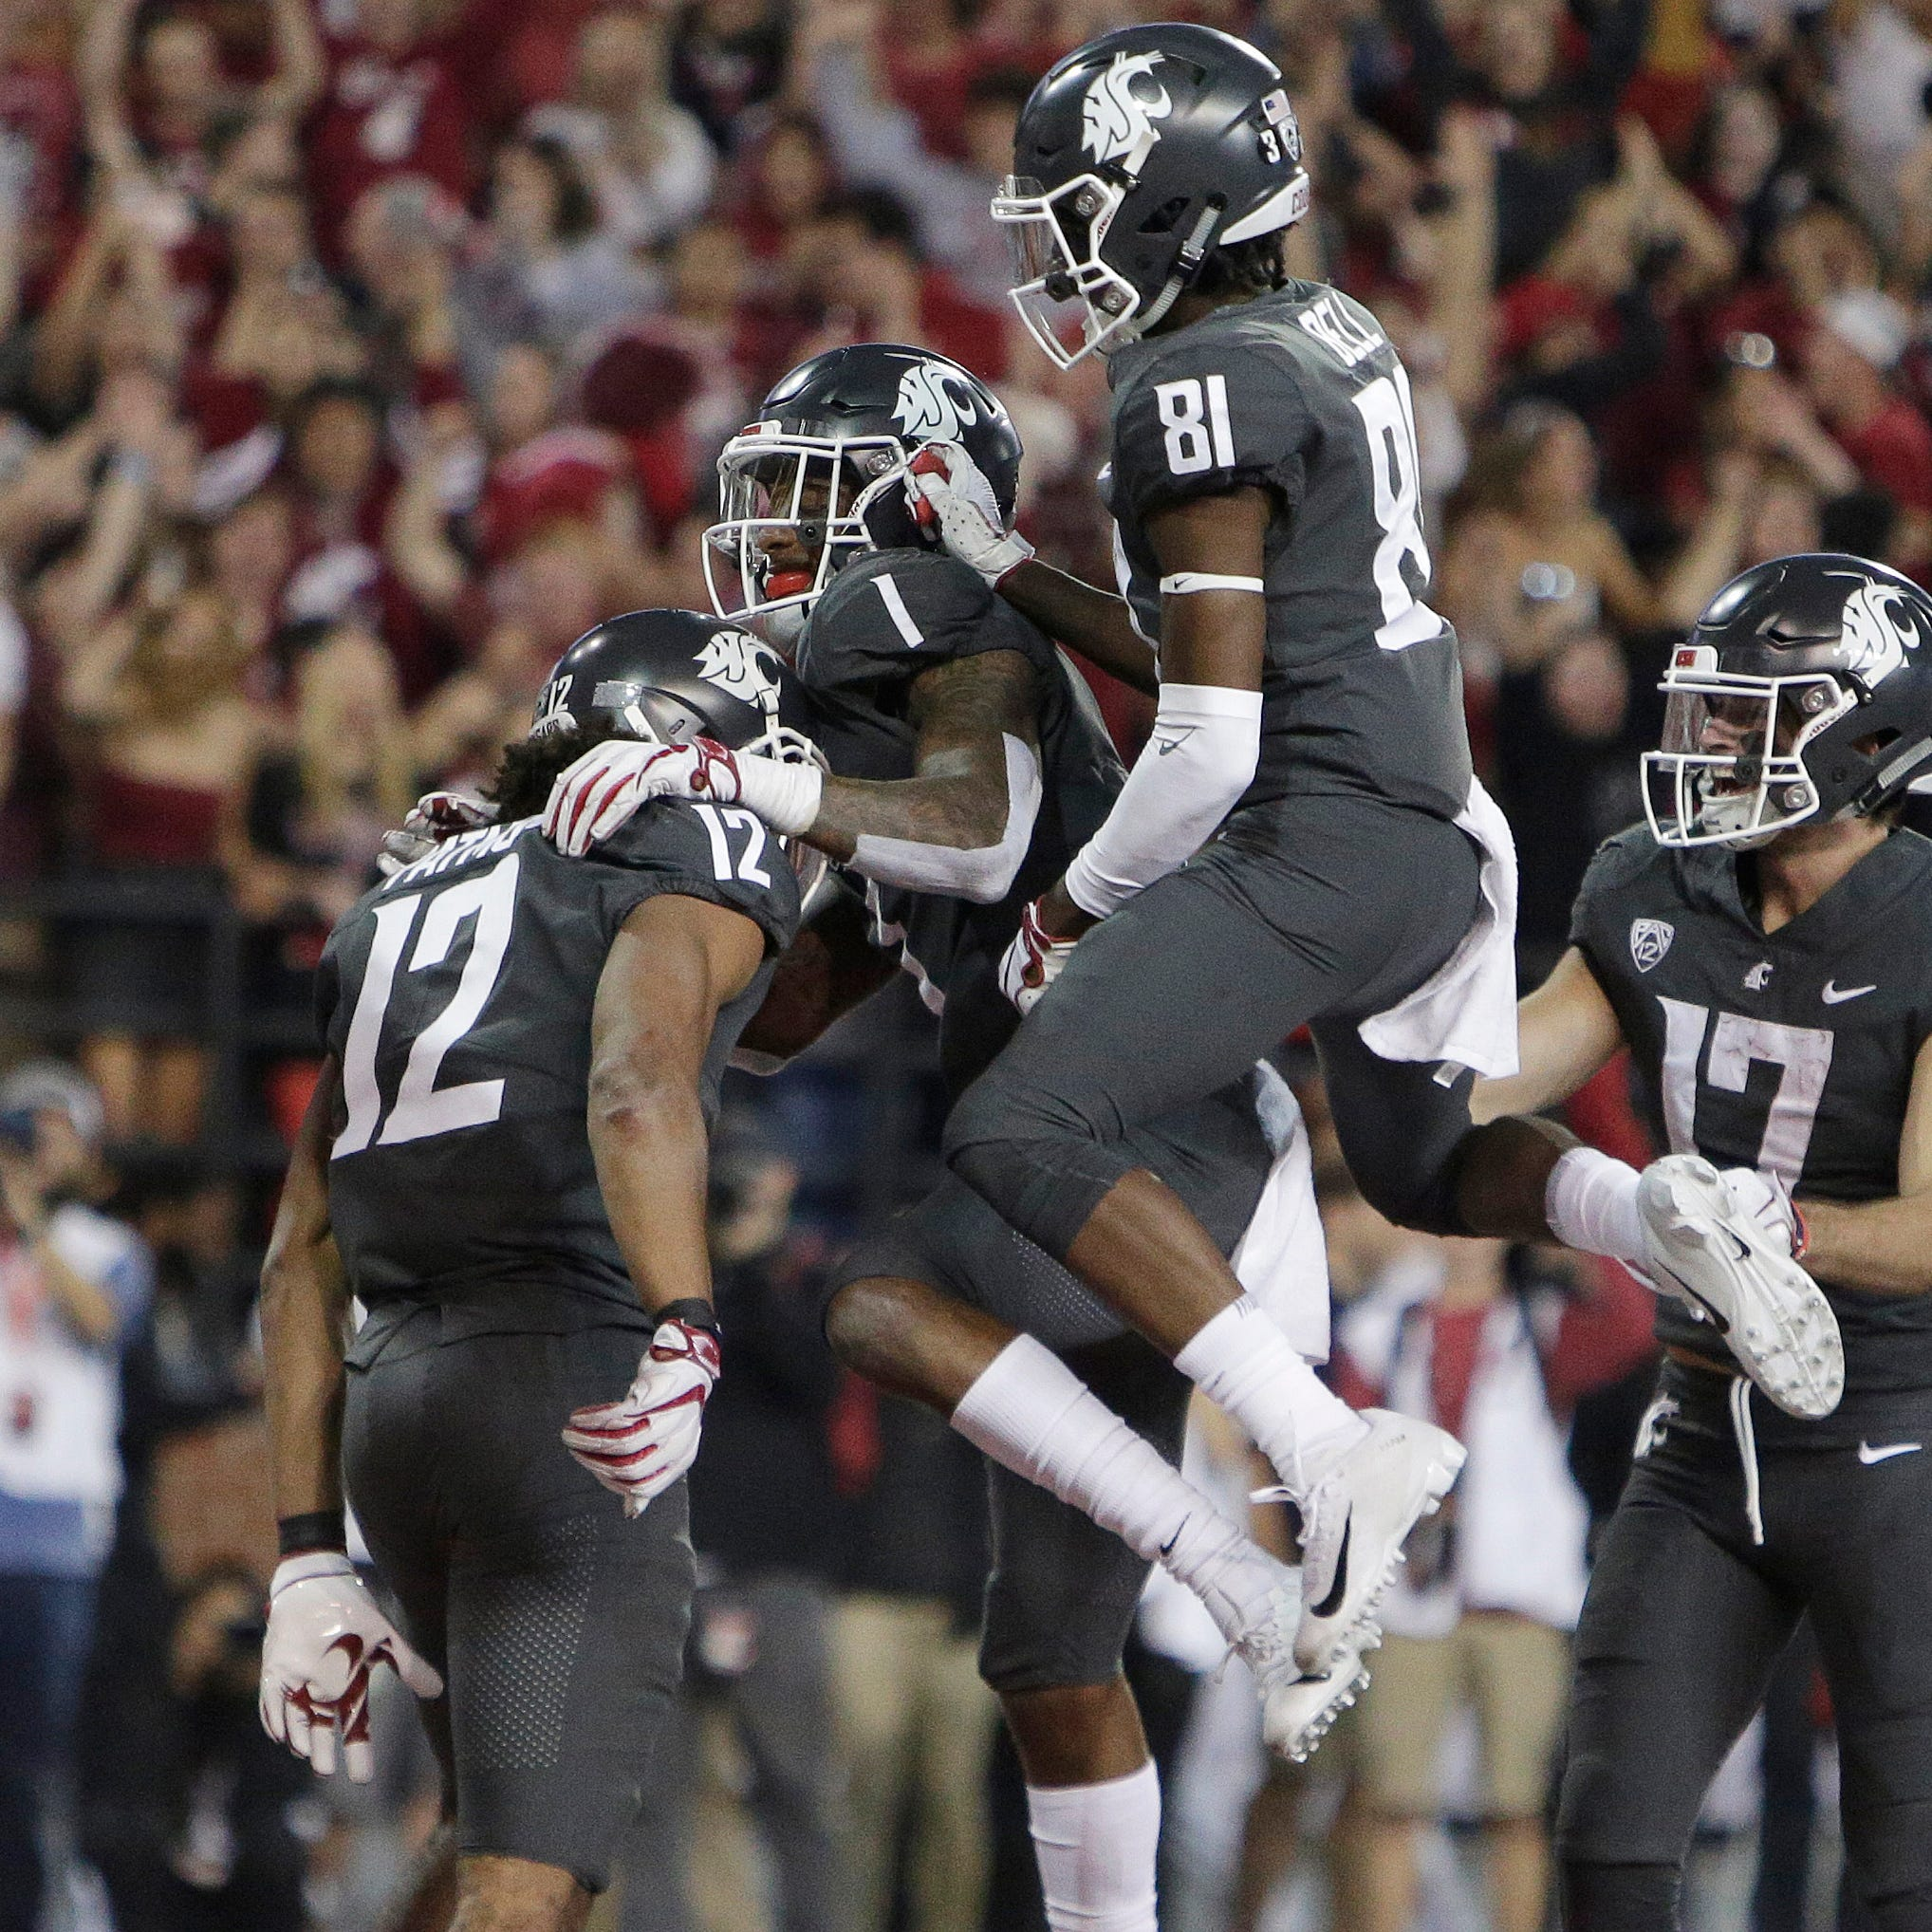 Jim Moore: A great day to be a Coug